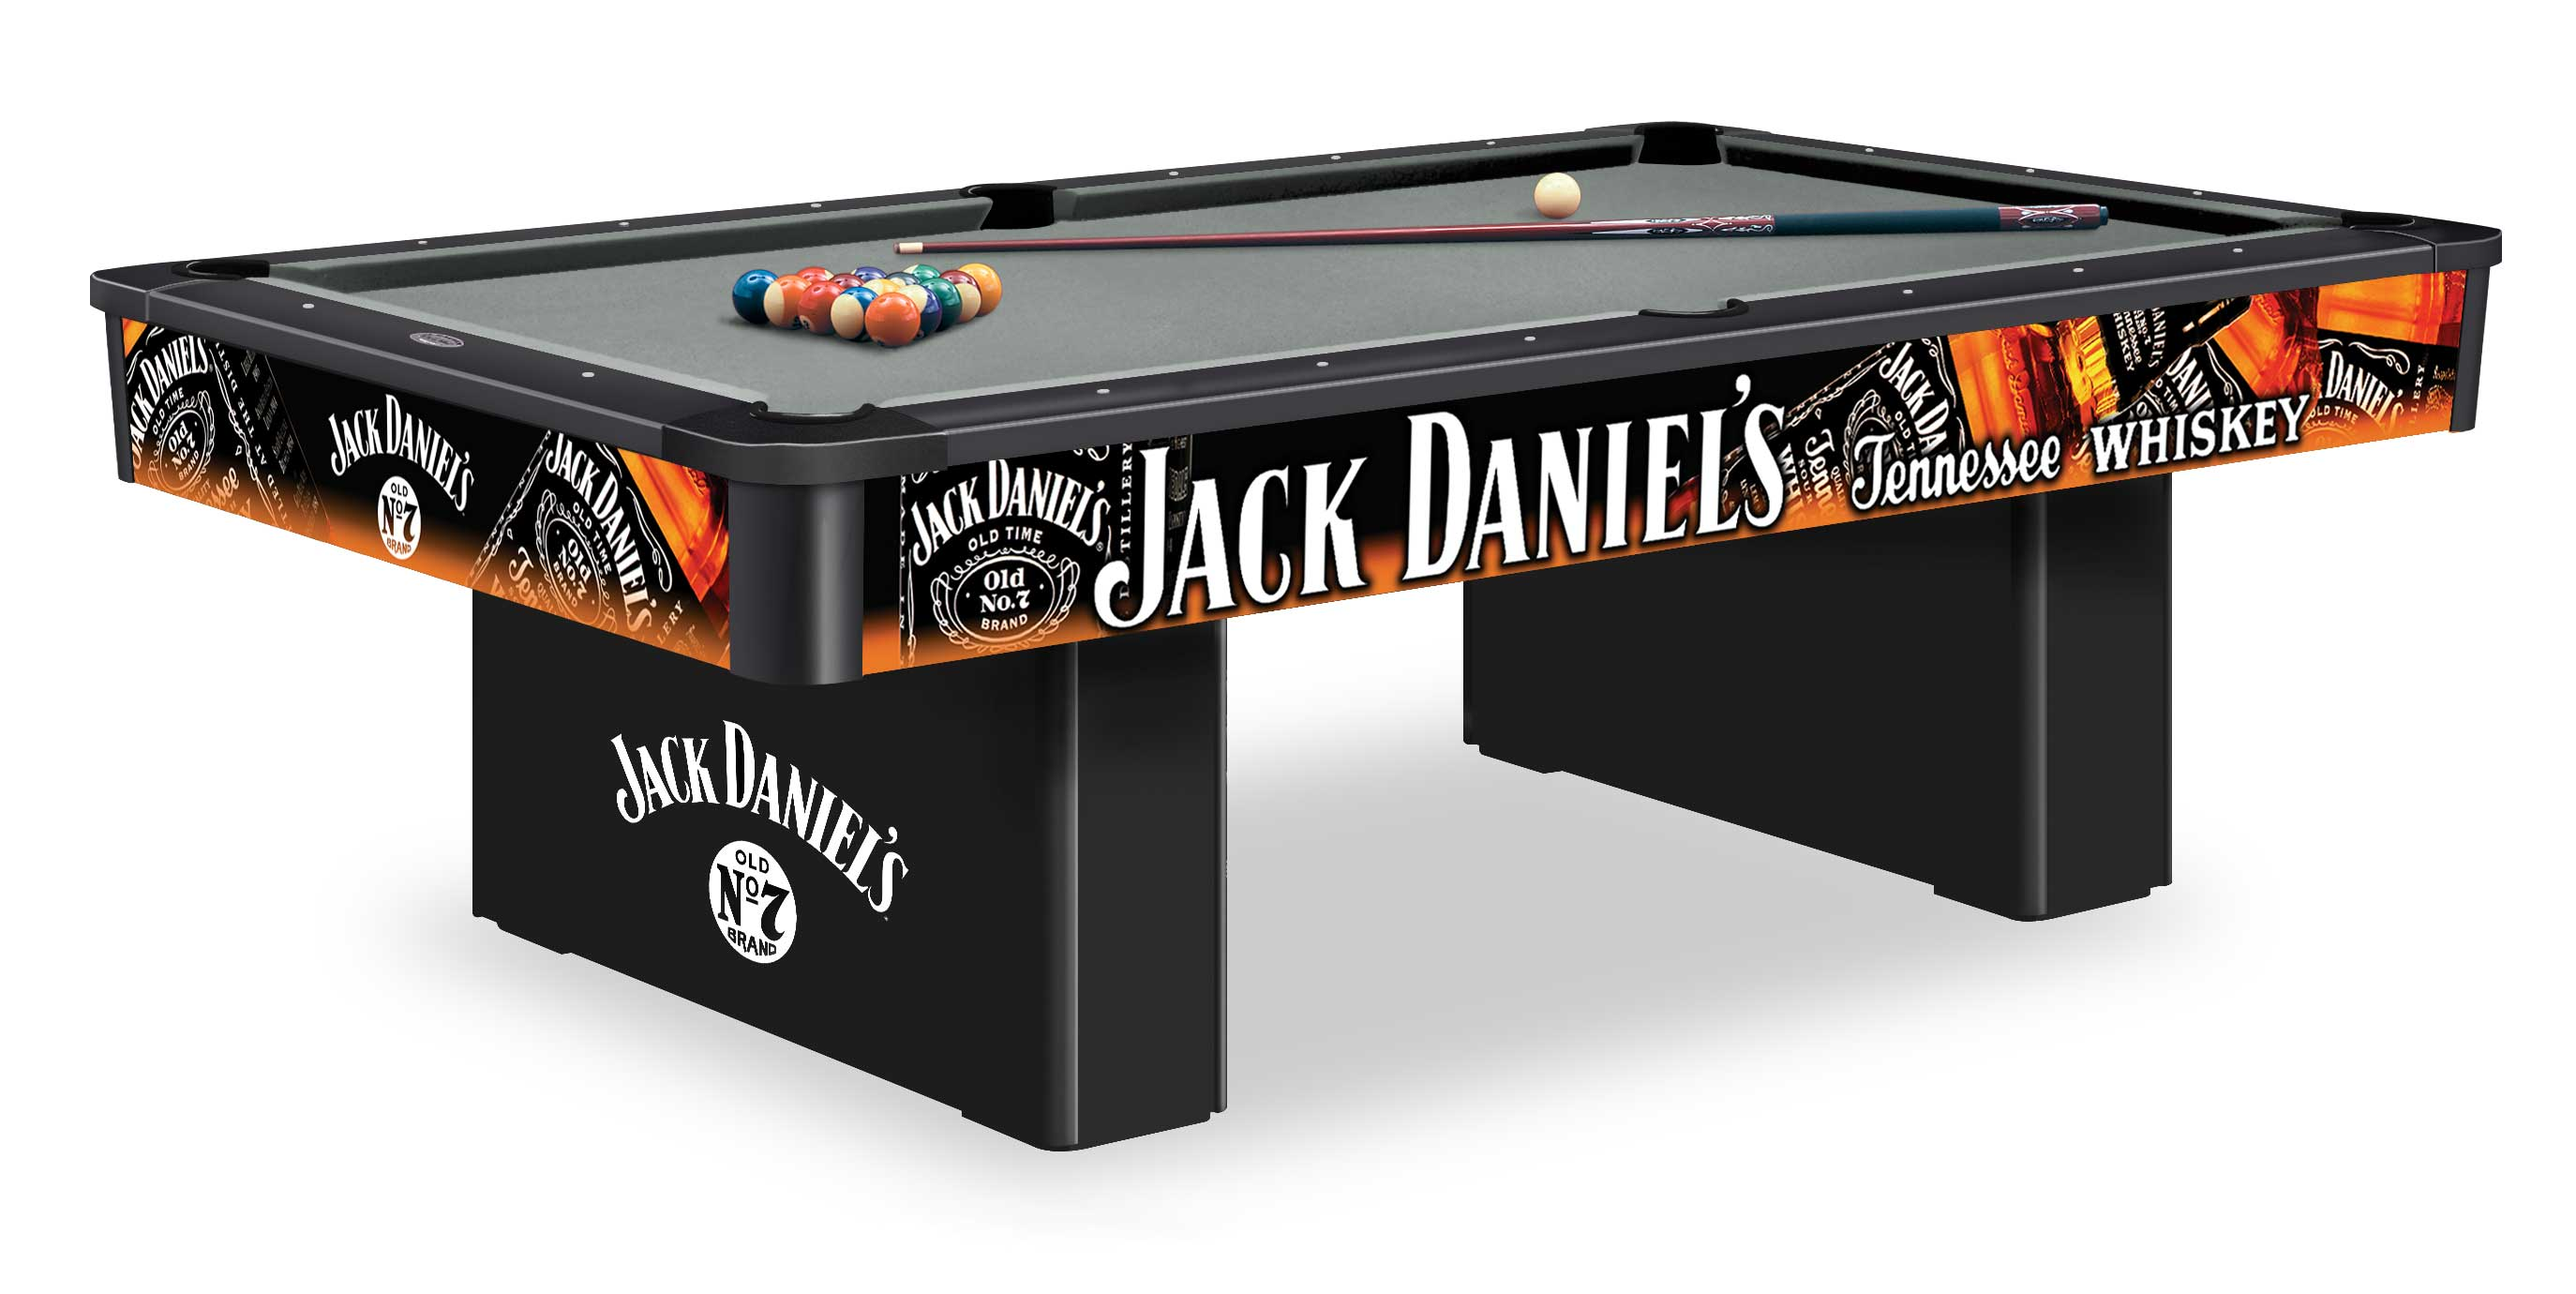 New Jersey Jack Daniels Pool Tables Olhausen Billiards Pool Table NJ - Jack daniels pool table